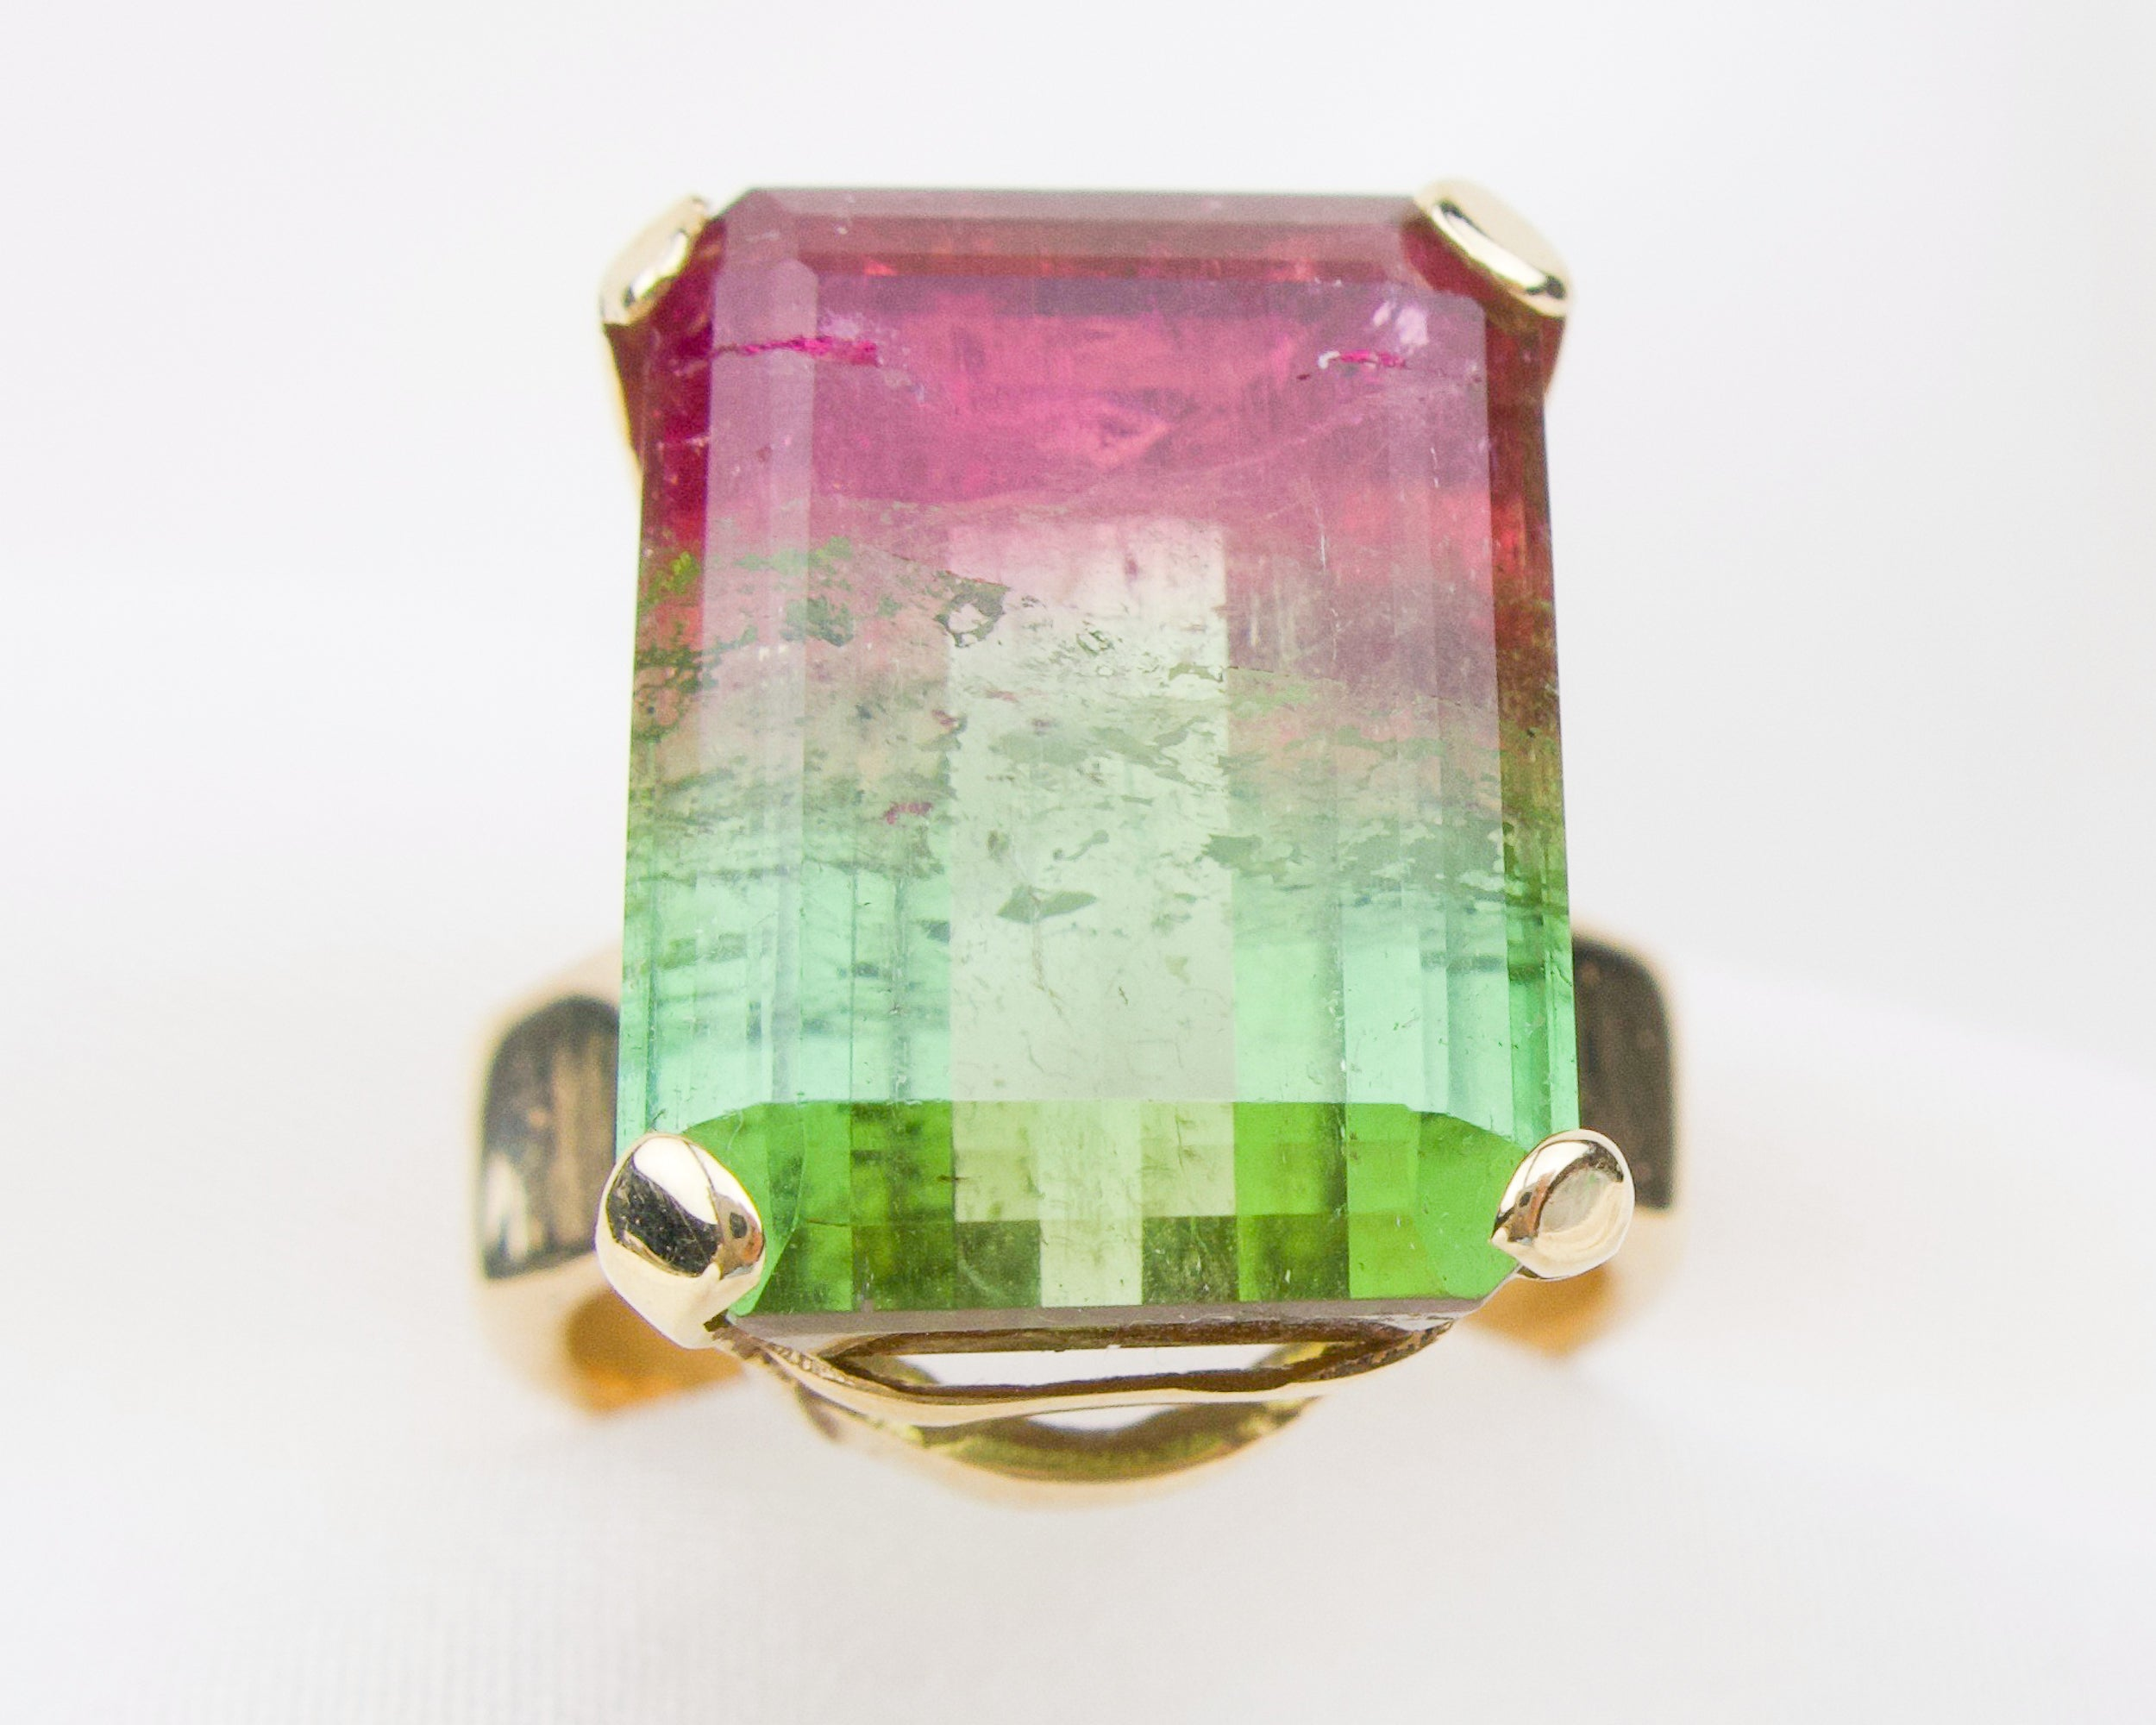 Vintage Watermelon Tourmaline Cocktail Ring